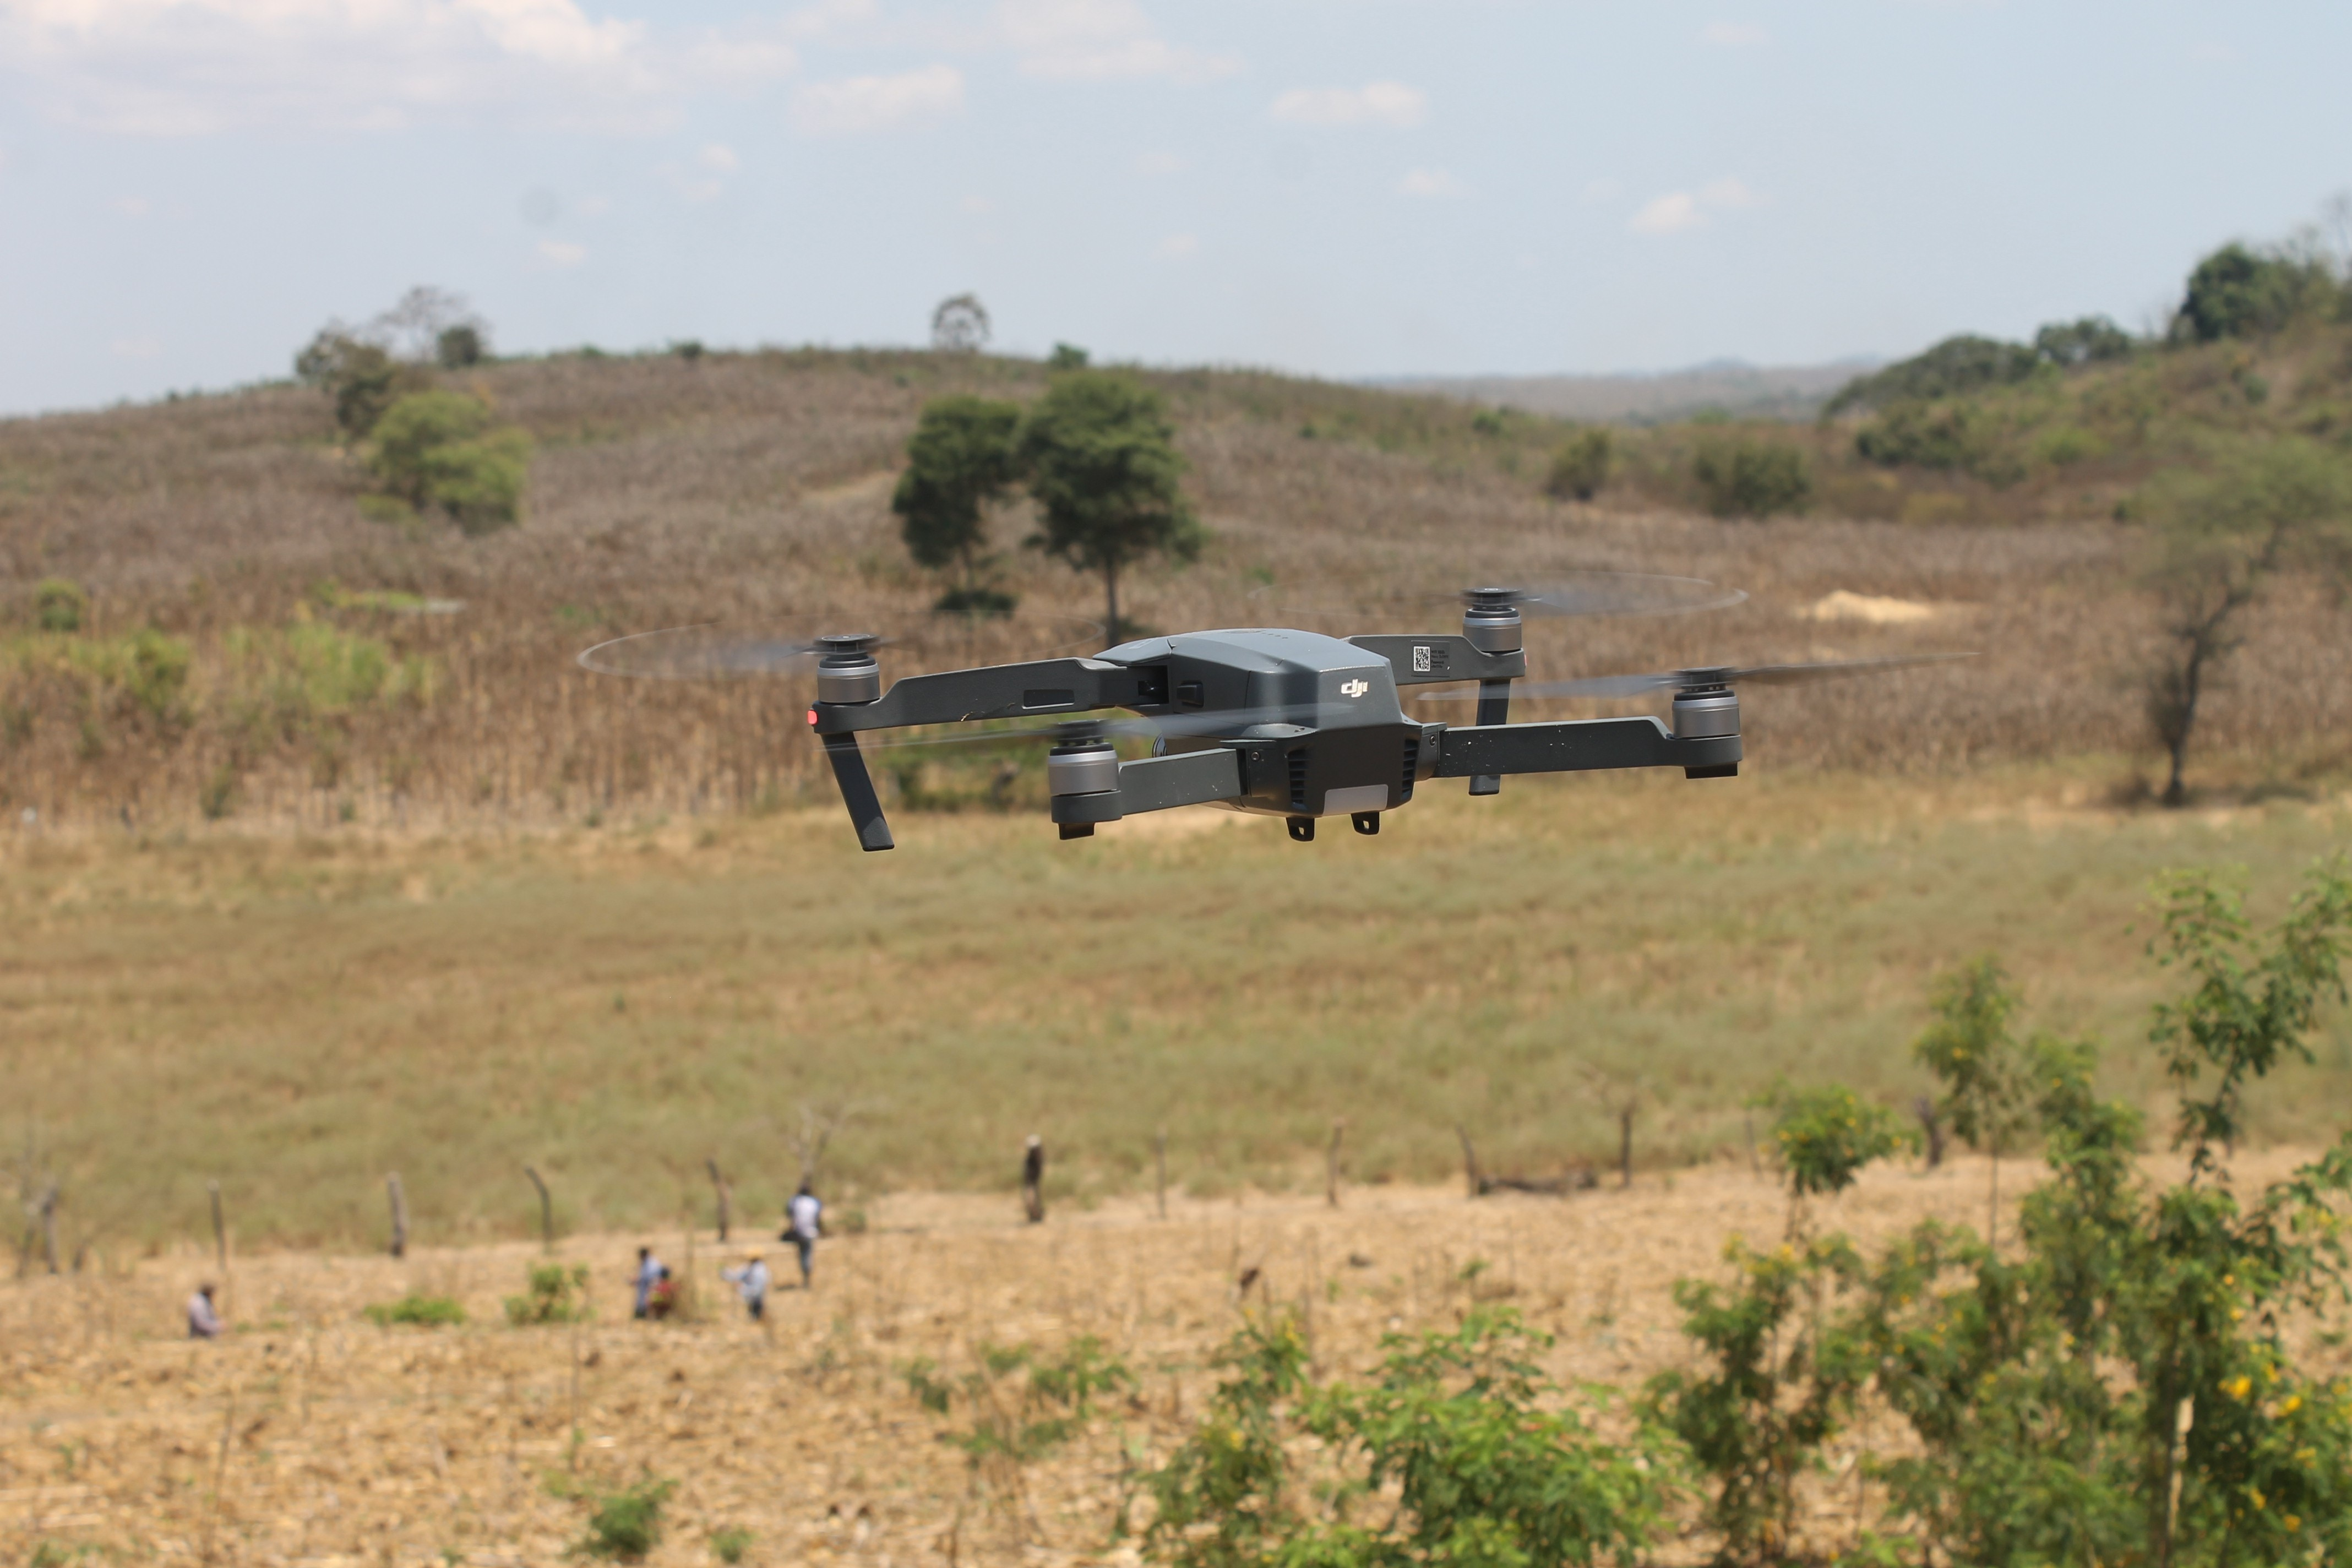 Blog report: Using Drones to Study Livestock and Trees in